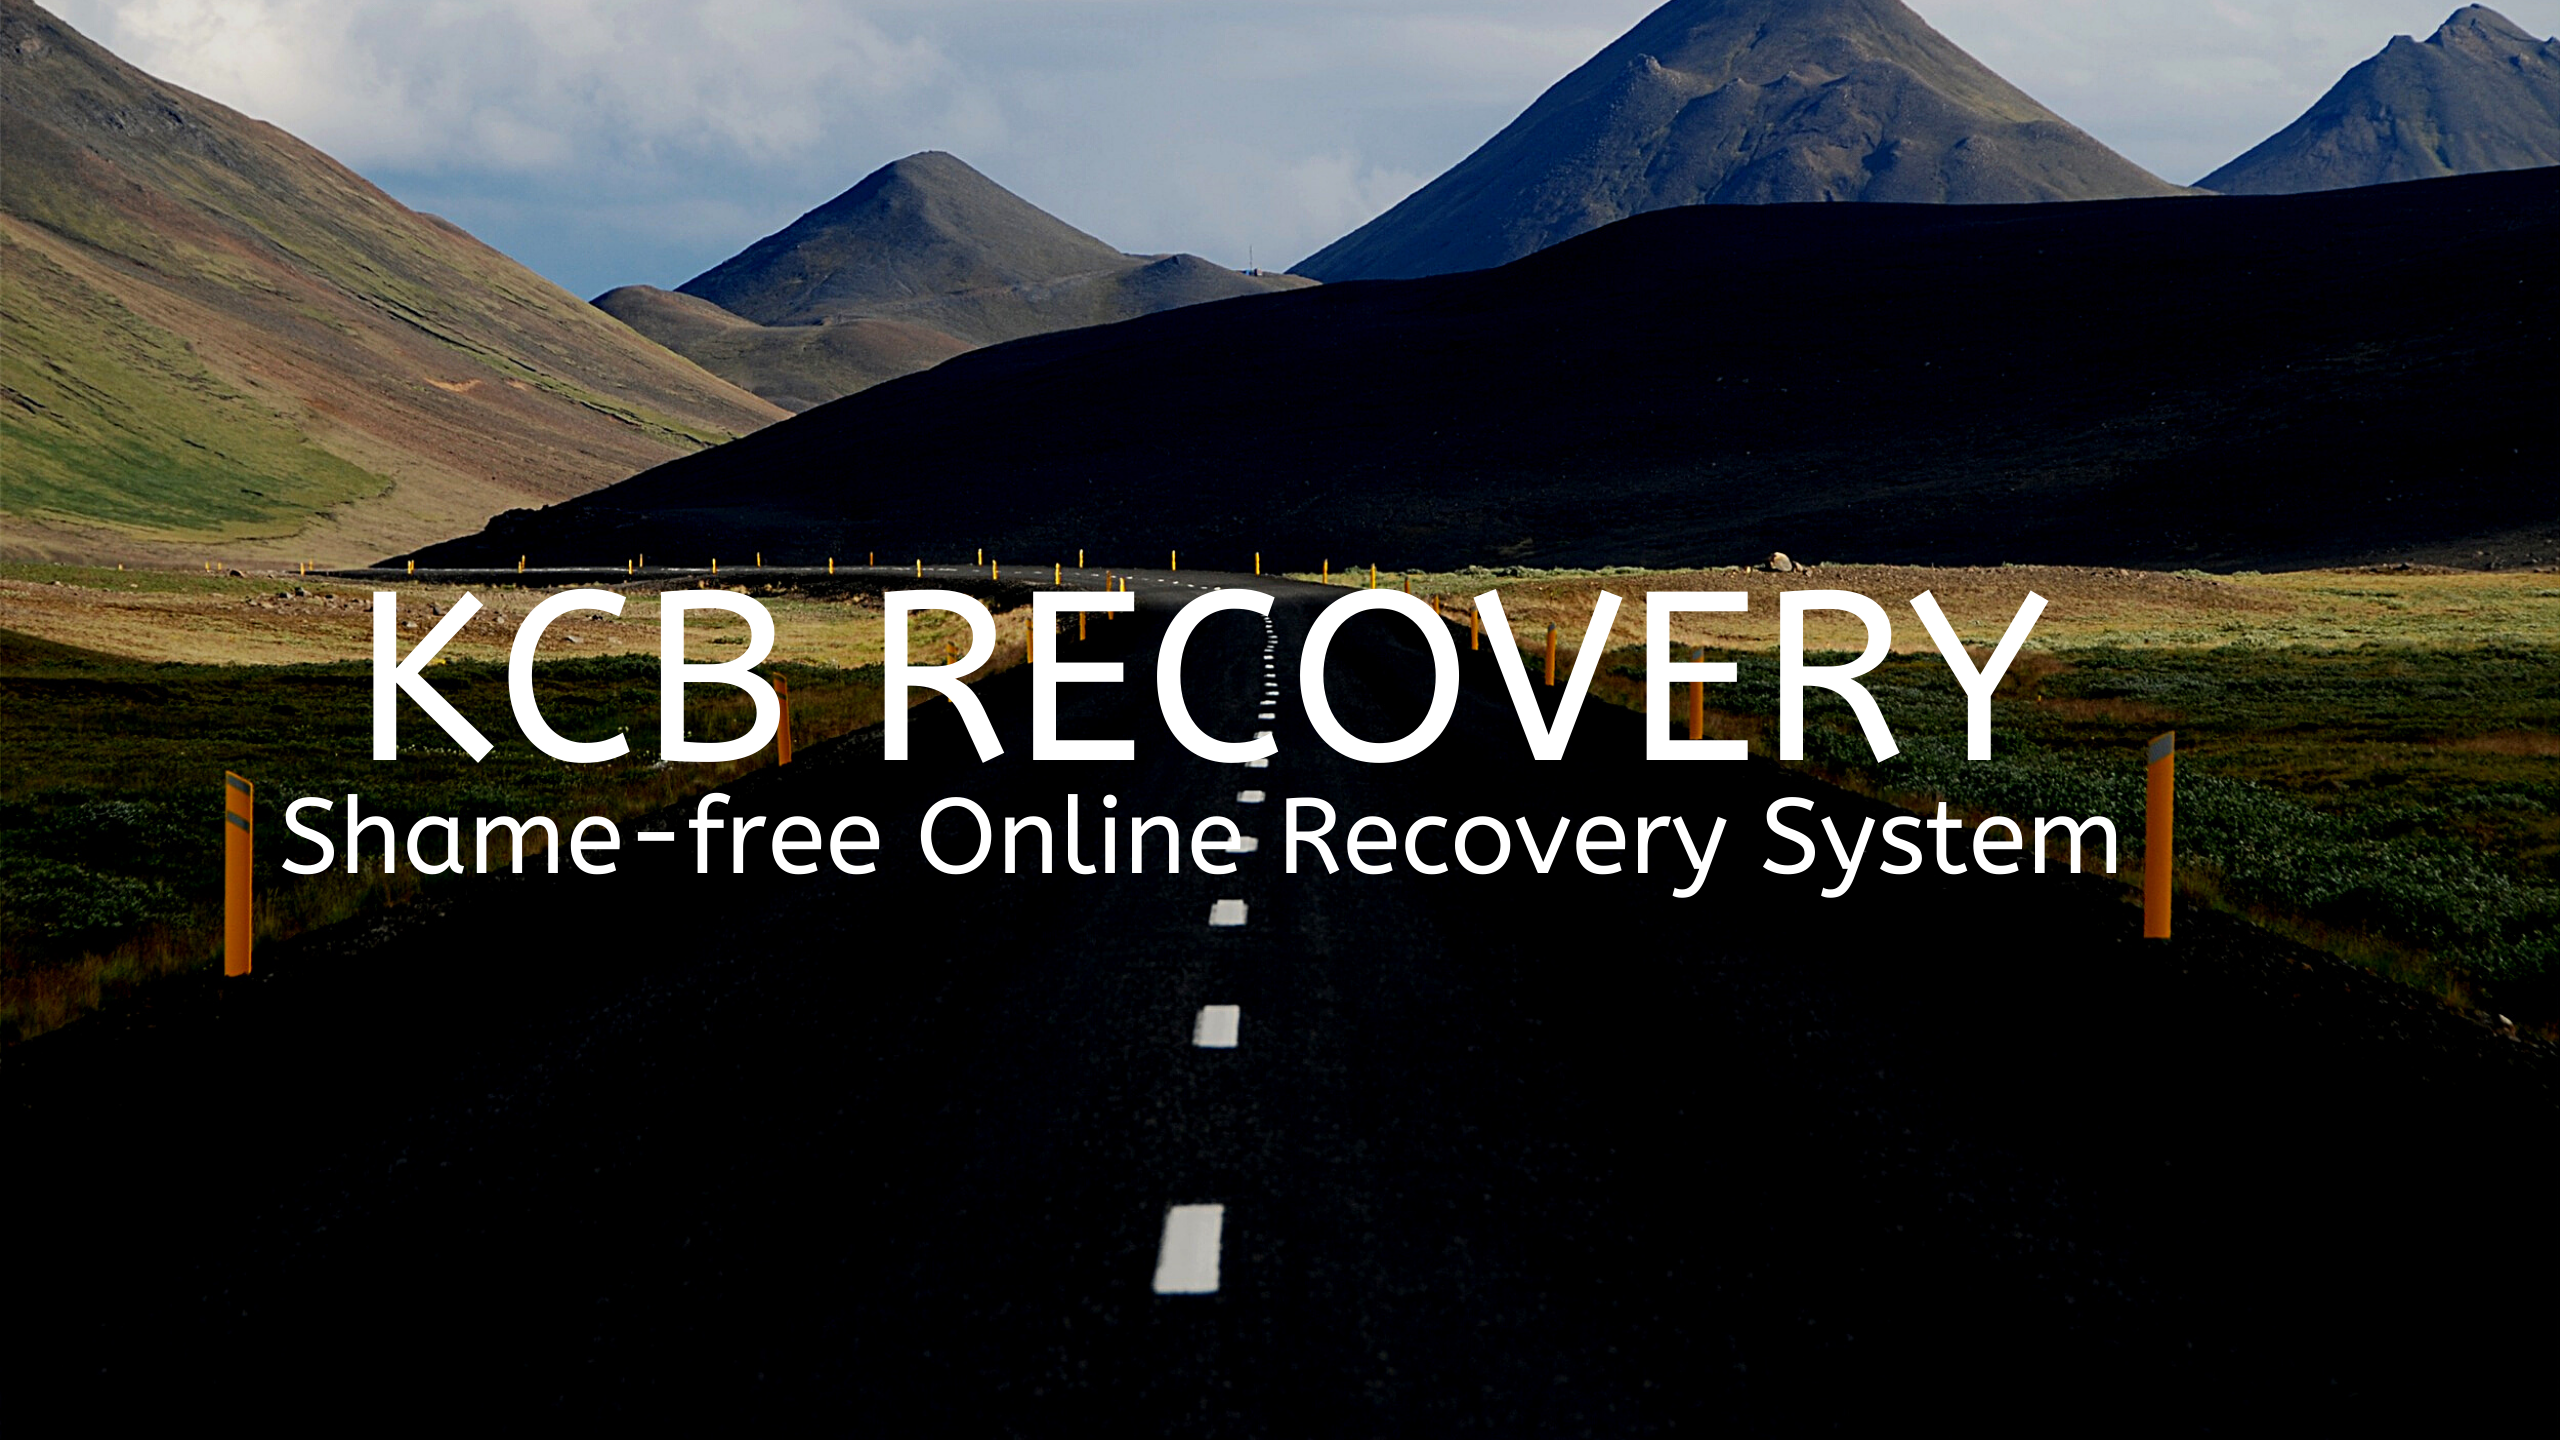 kcb recovery review